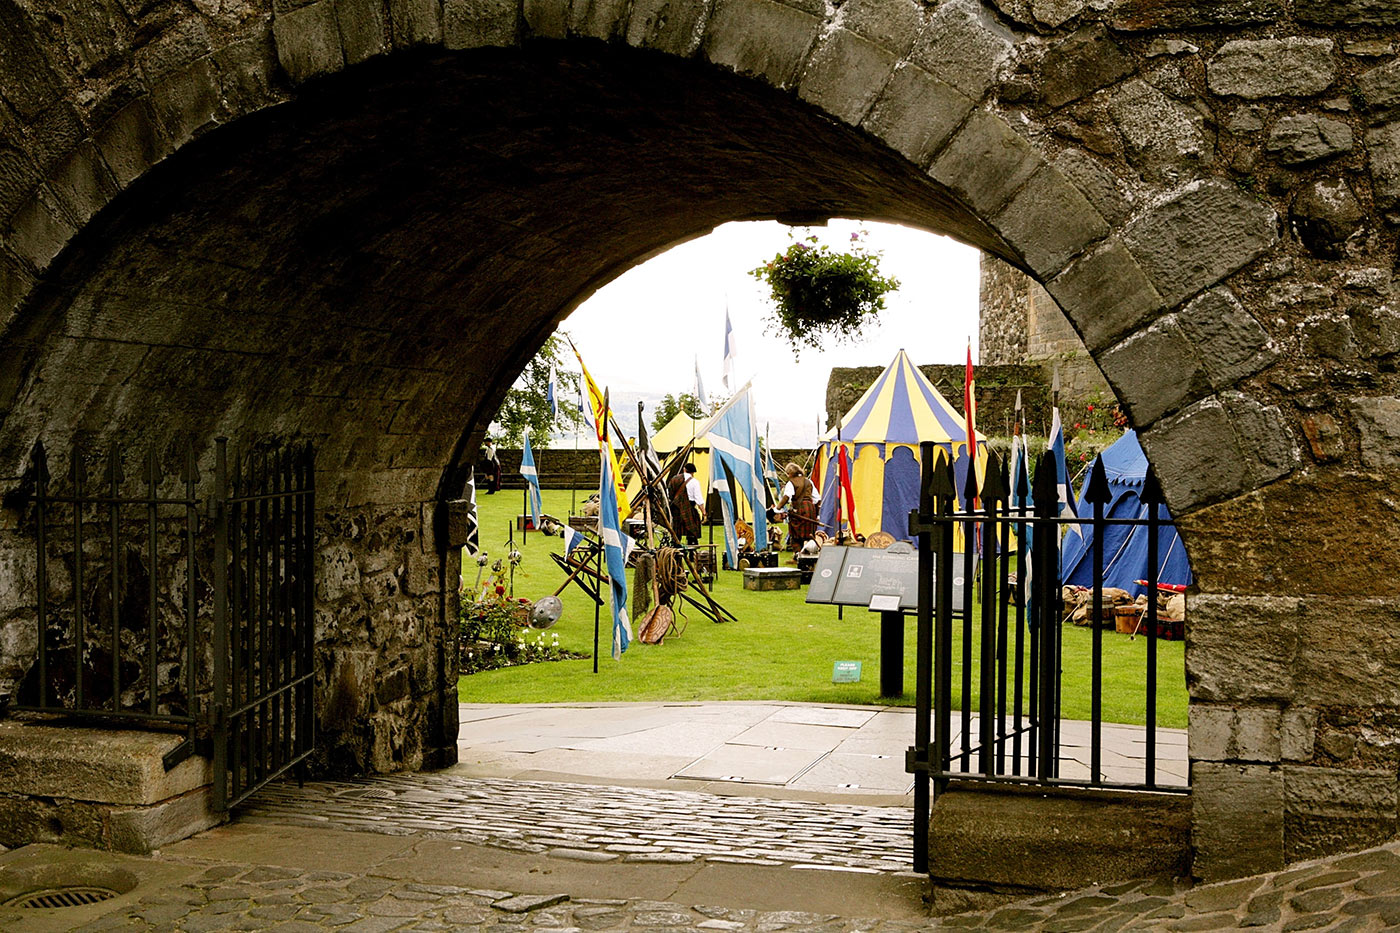 Historic clan encampment